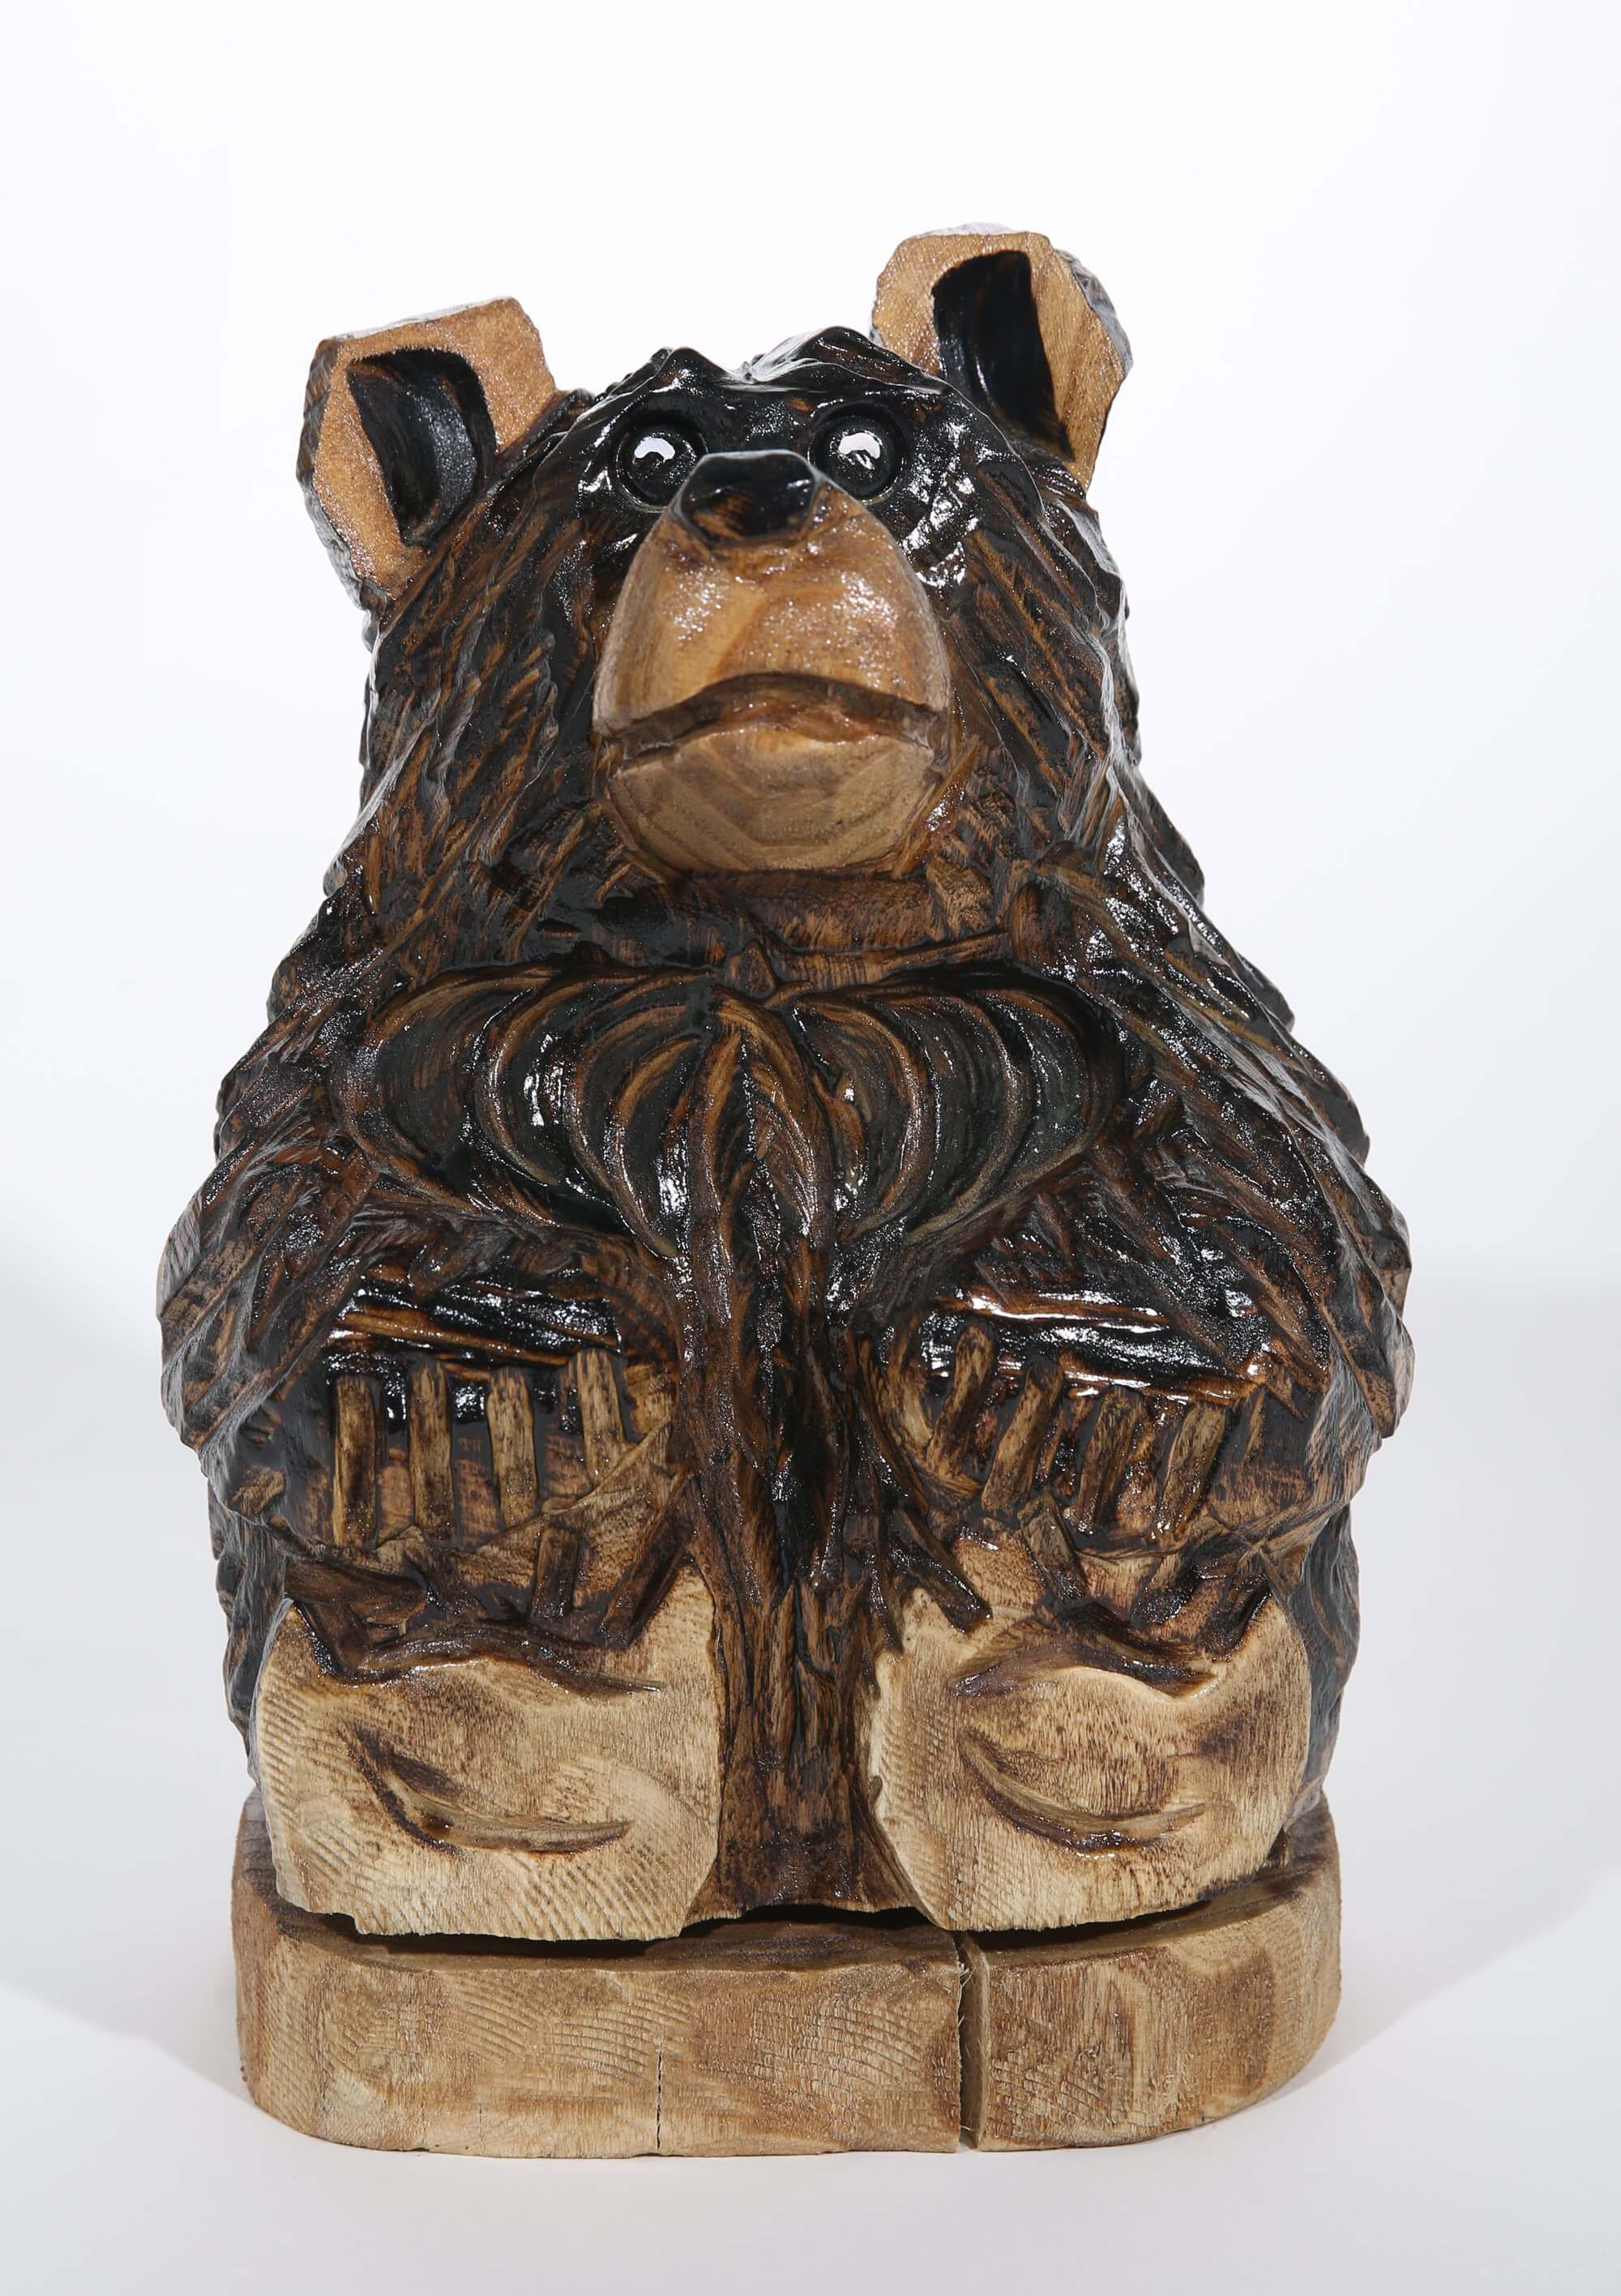 Image of Carved bear statue